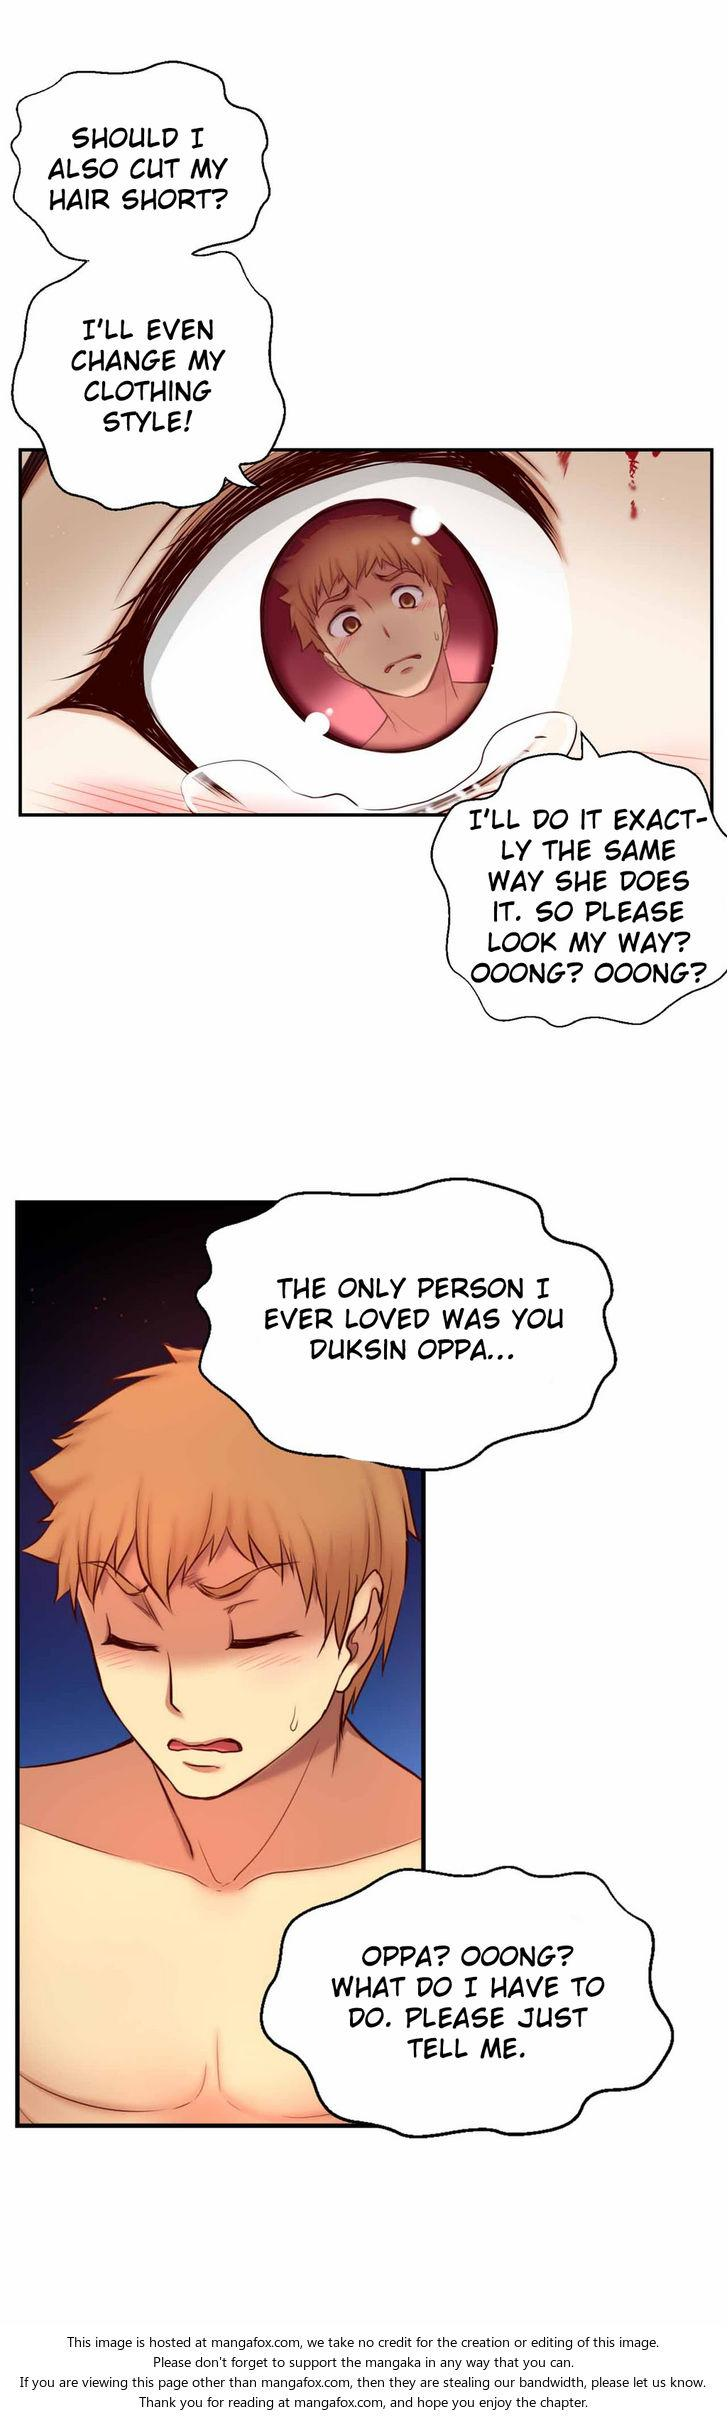 [Donggul Gom] She is Young (English) Part 1/2 1798